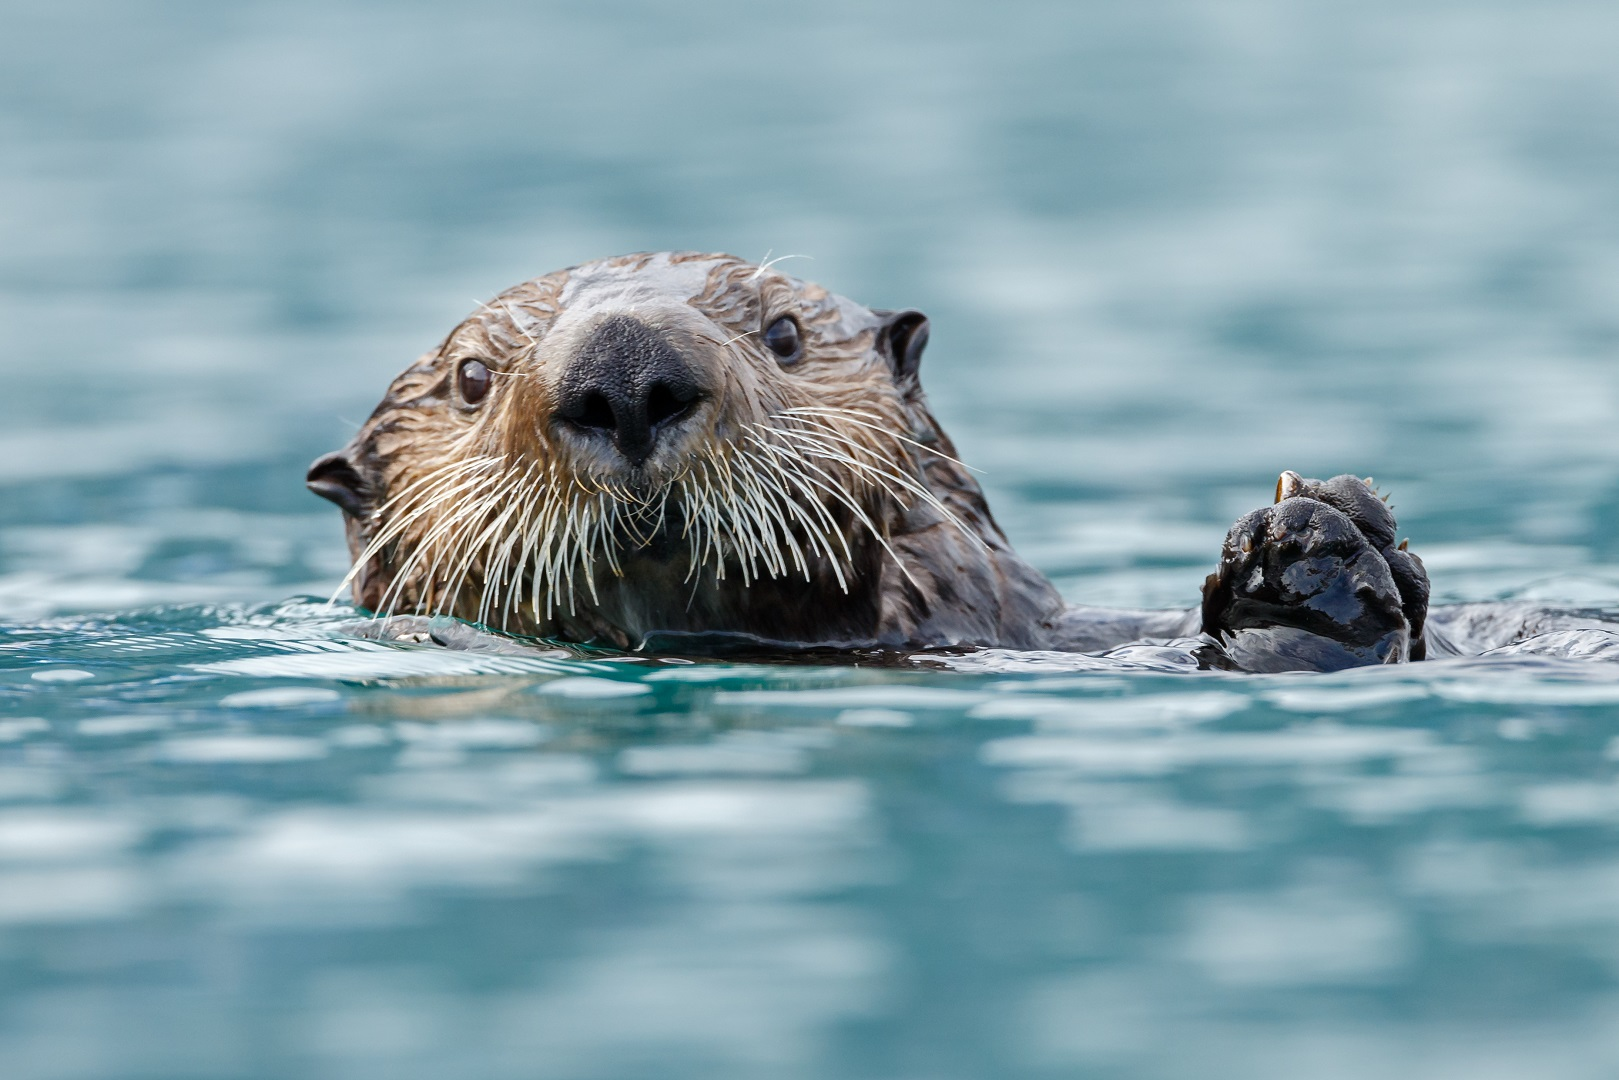 Closeup Sea Otter In Water